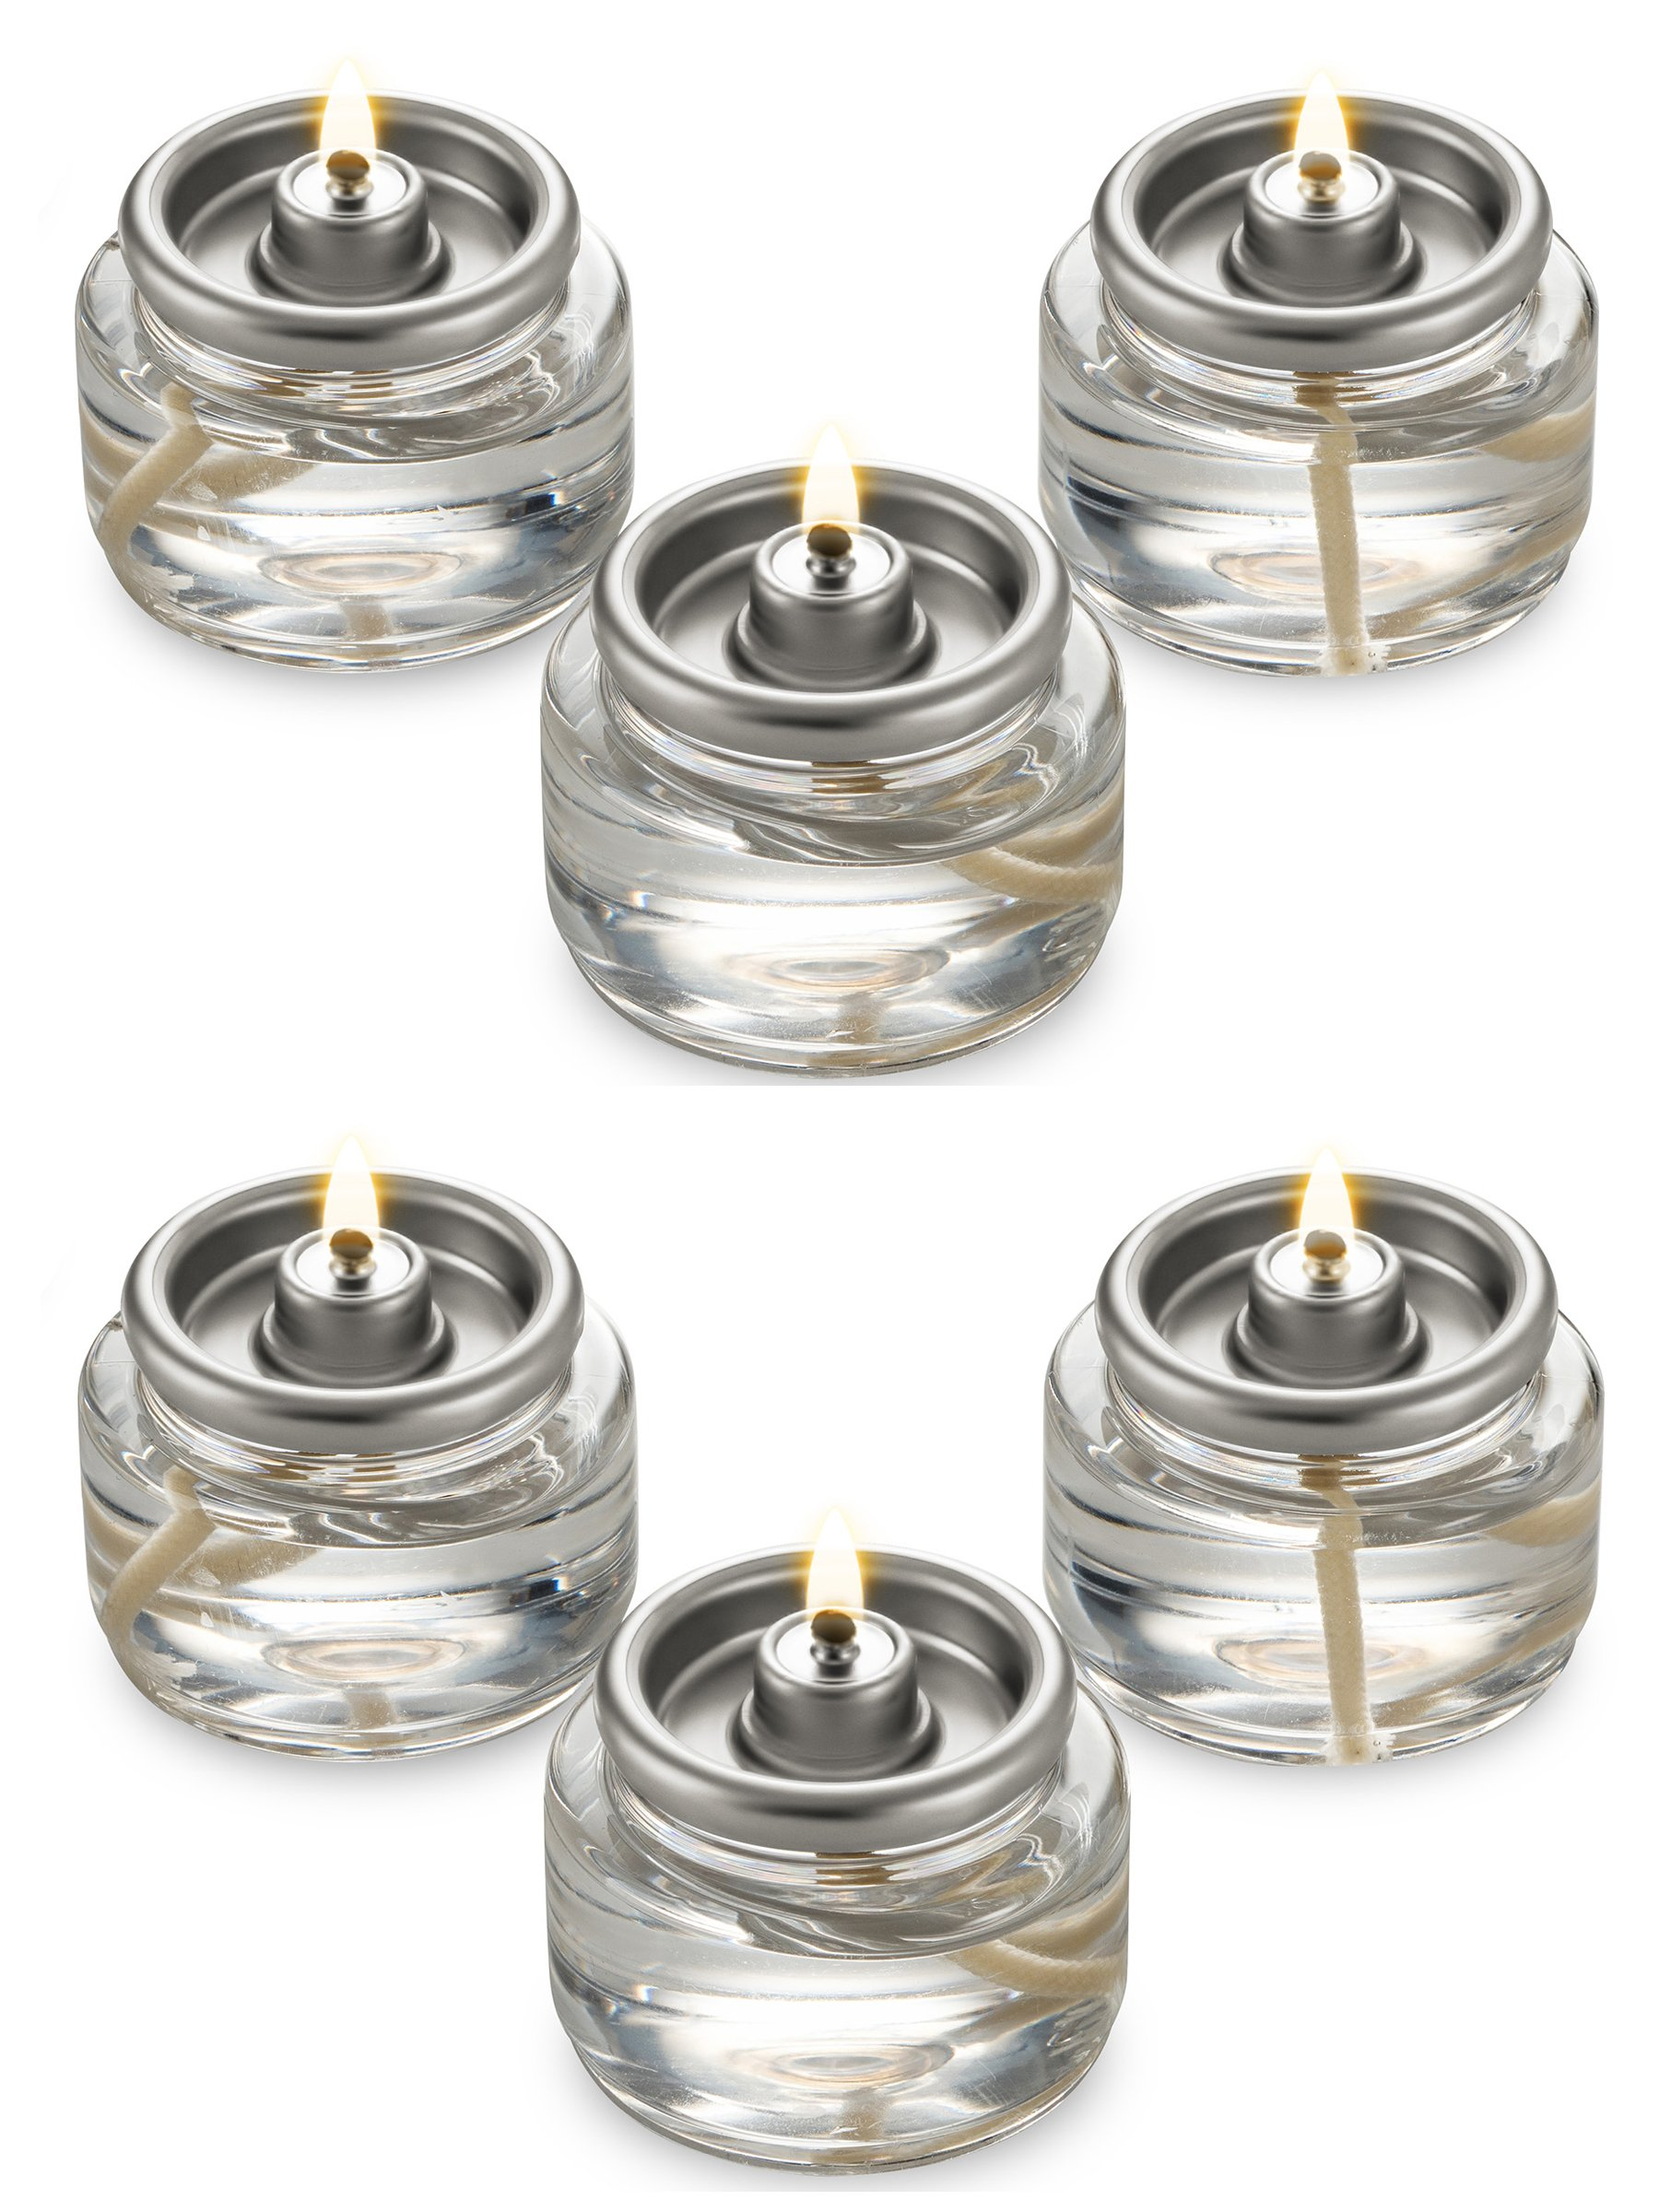 Fuel Cell Tealights Liquid Oil Candles Paraffin 8 Hour Burn - in a Box - 90Pack - Disposable by Candle Charisma